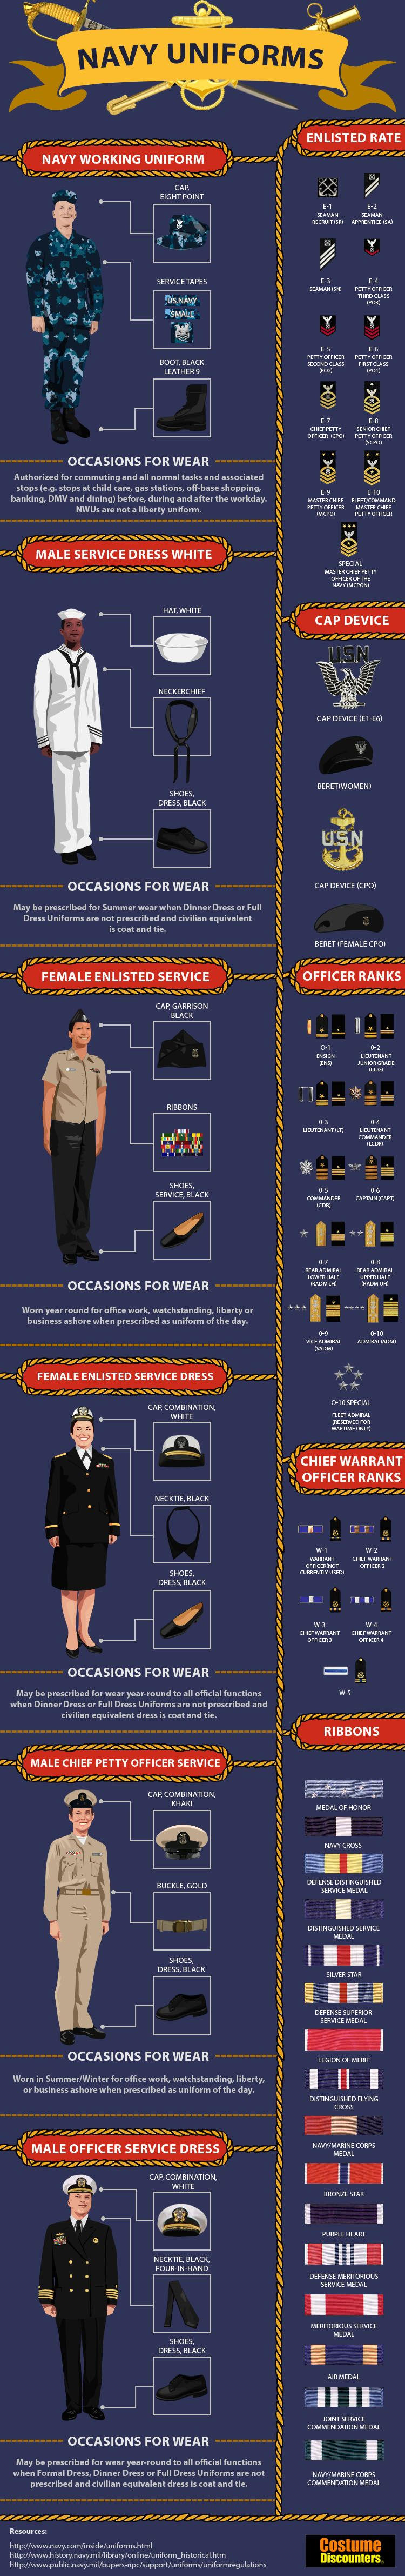 US Navy Uniforms Infographic